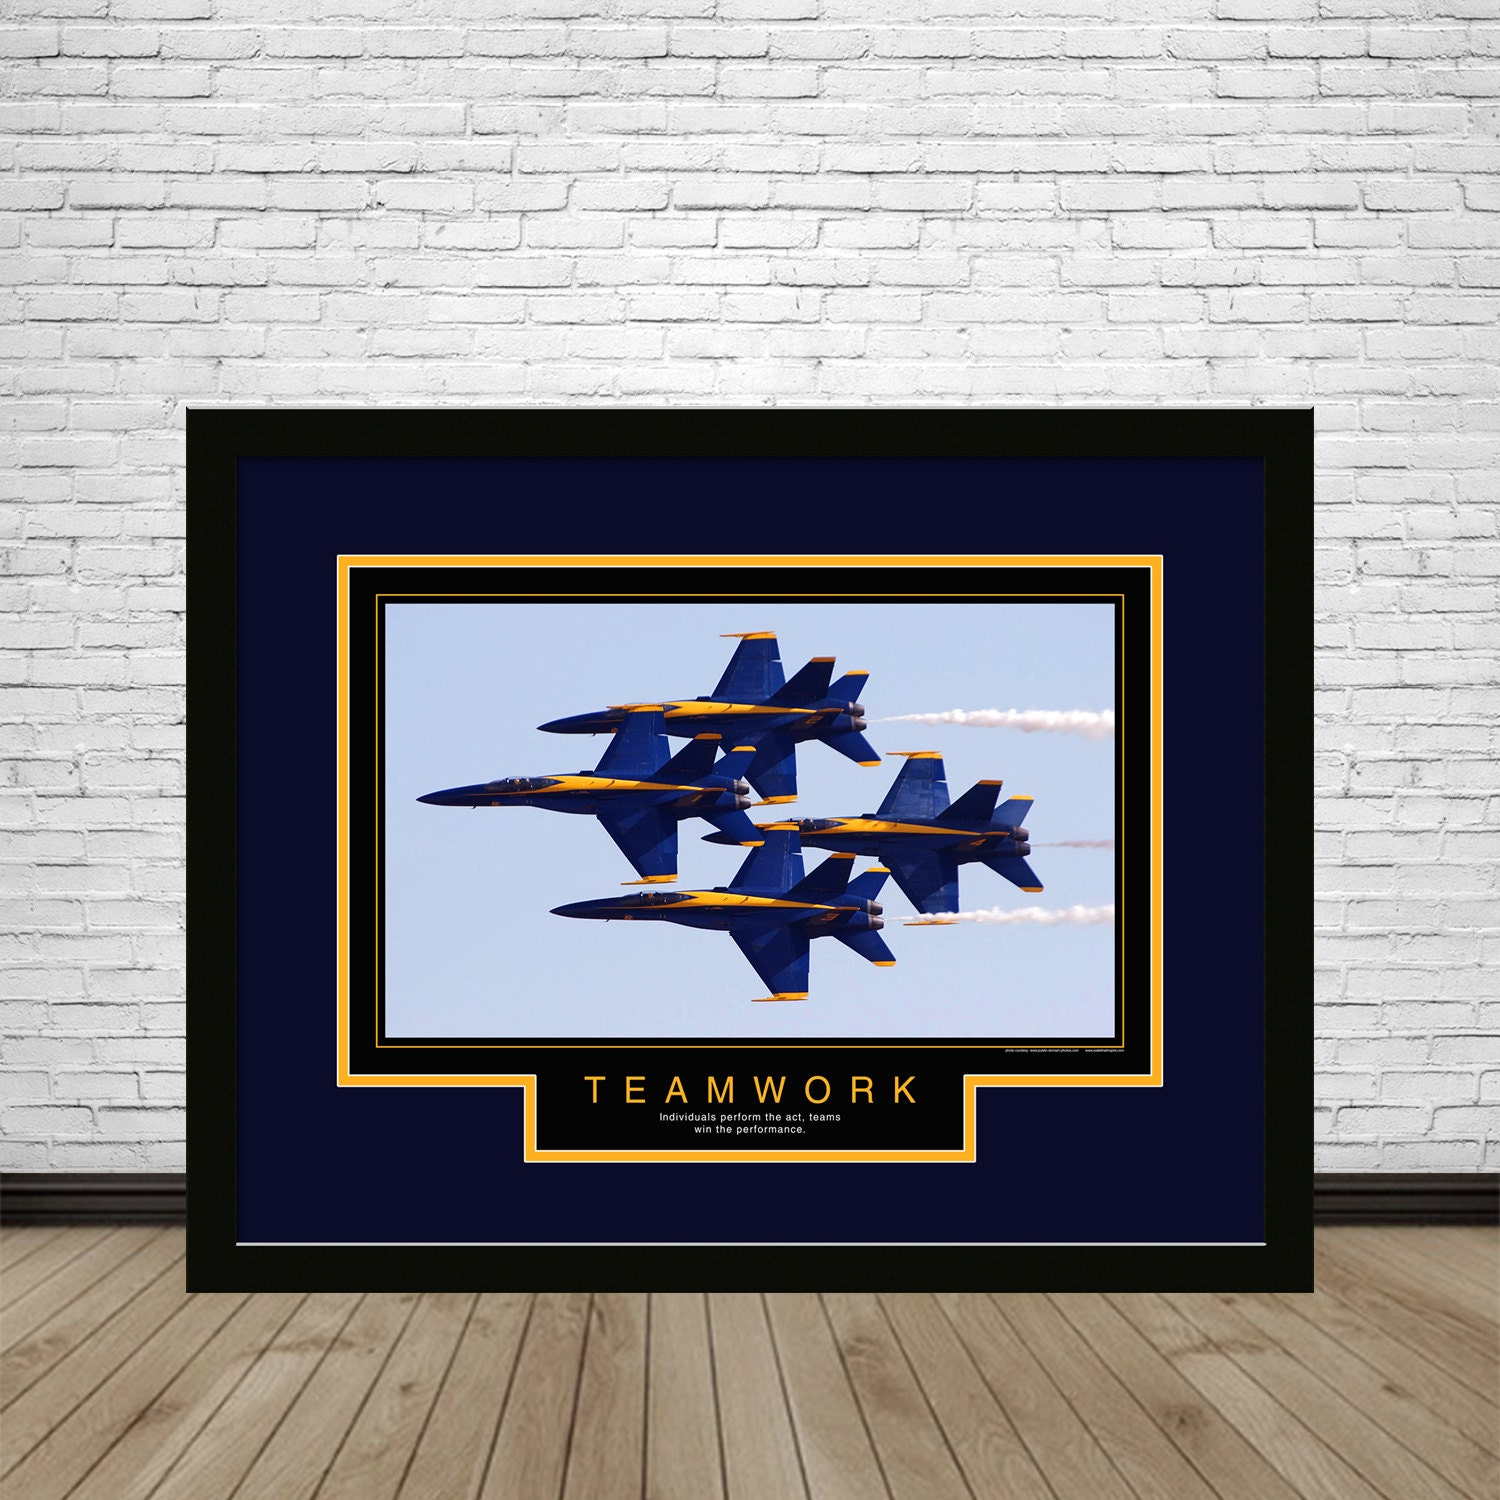 Teamwork Blue Angels, Motivational Poster